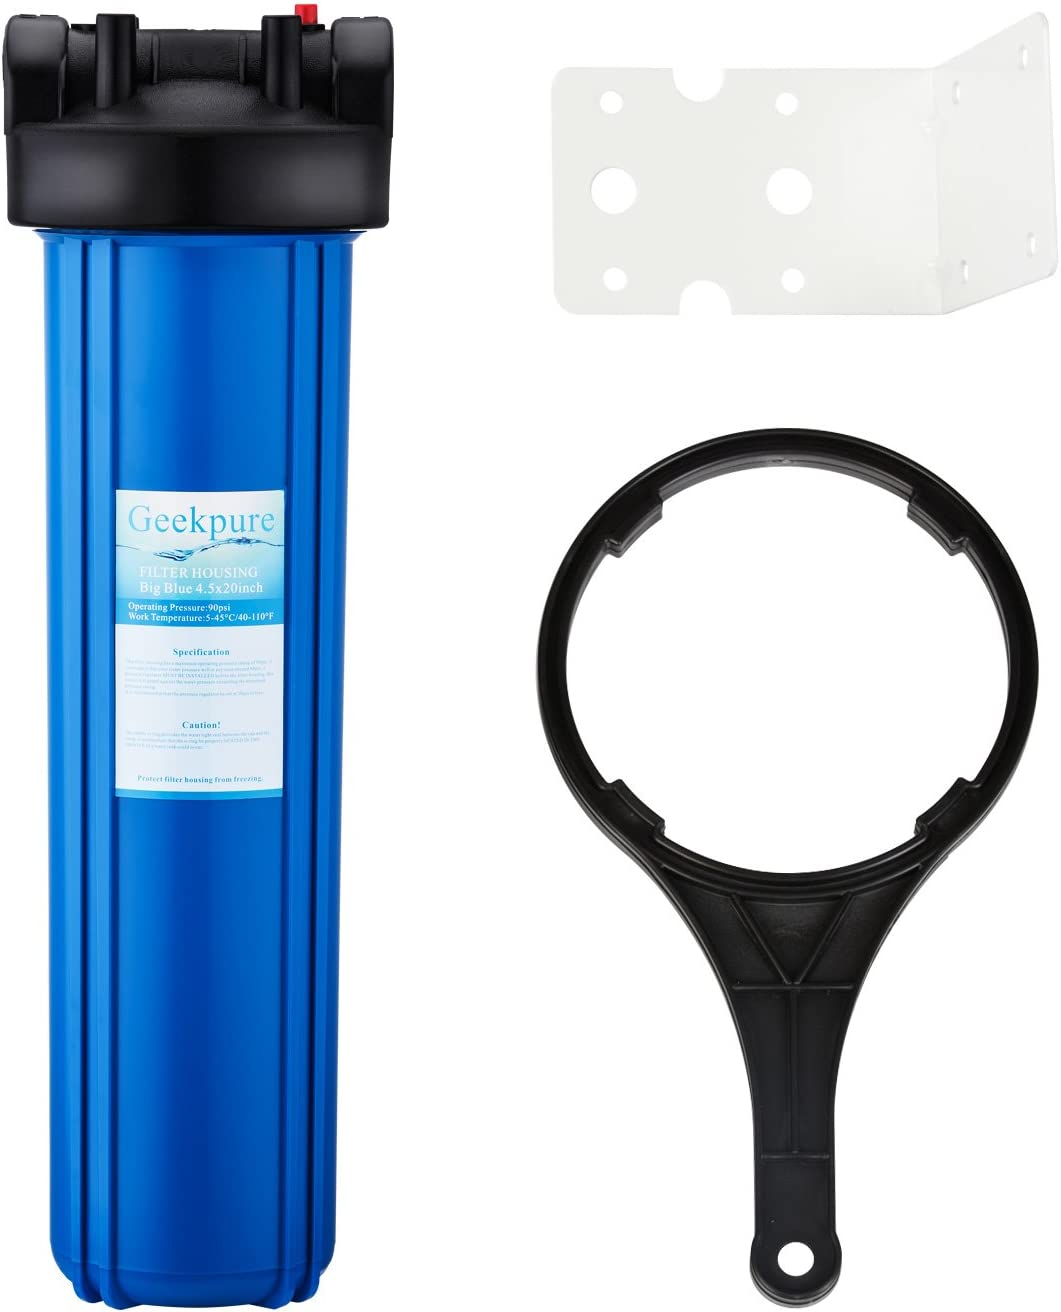 Geekpure Whole House 20 Inch Big Blue Water Filter Housing 1-Inch Inlet/Outlet with Wrench and Bracket -4.5 Inch x 20 Inch -Blue Color